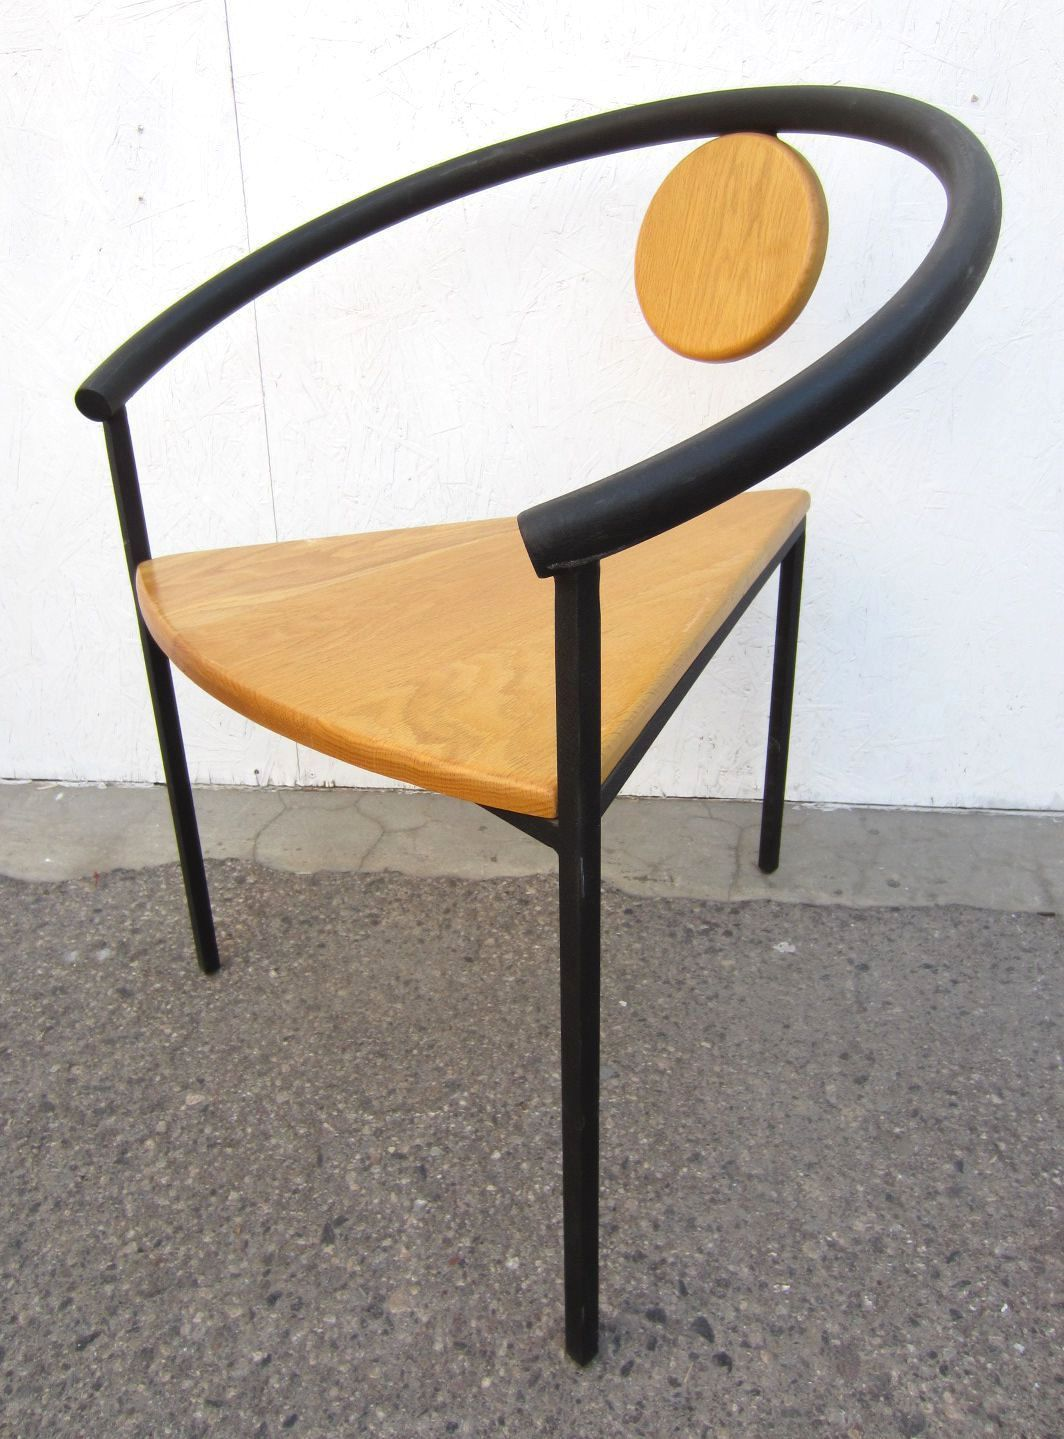 Six memphis post modern dining or arm chairs in the style of michele de lucchi 3